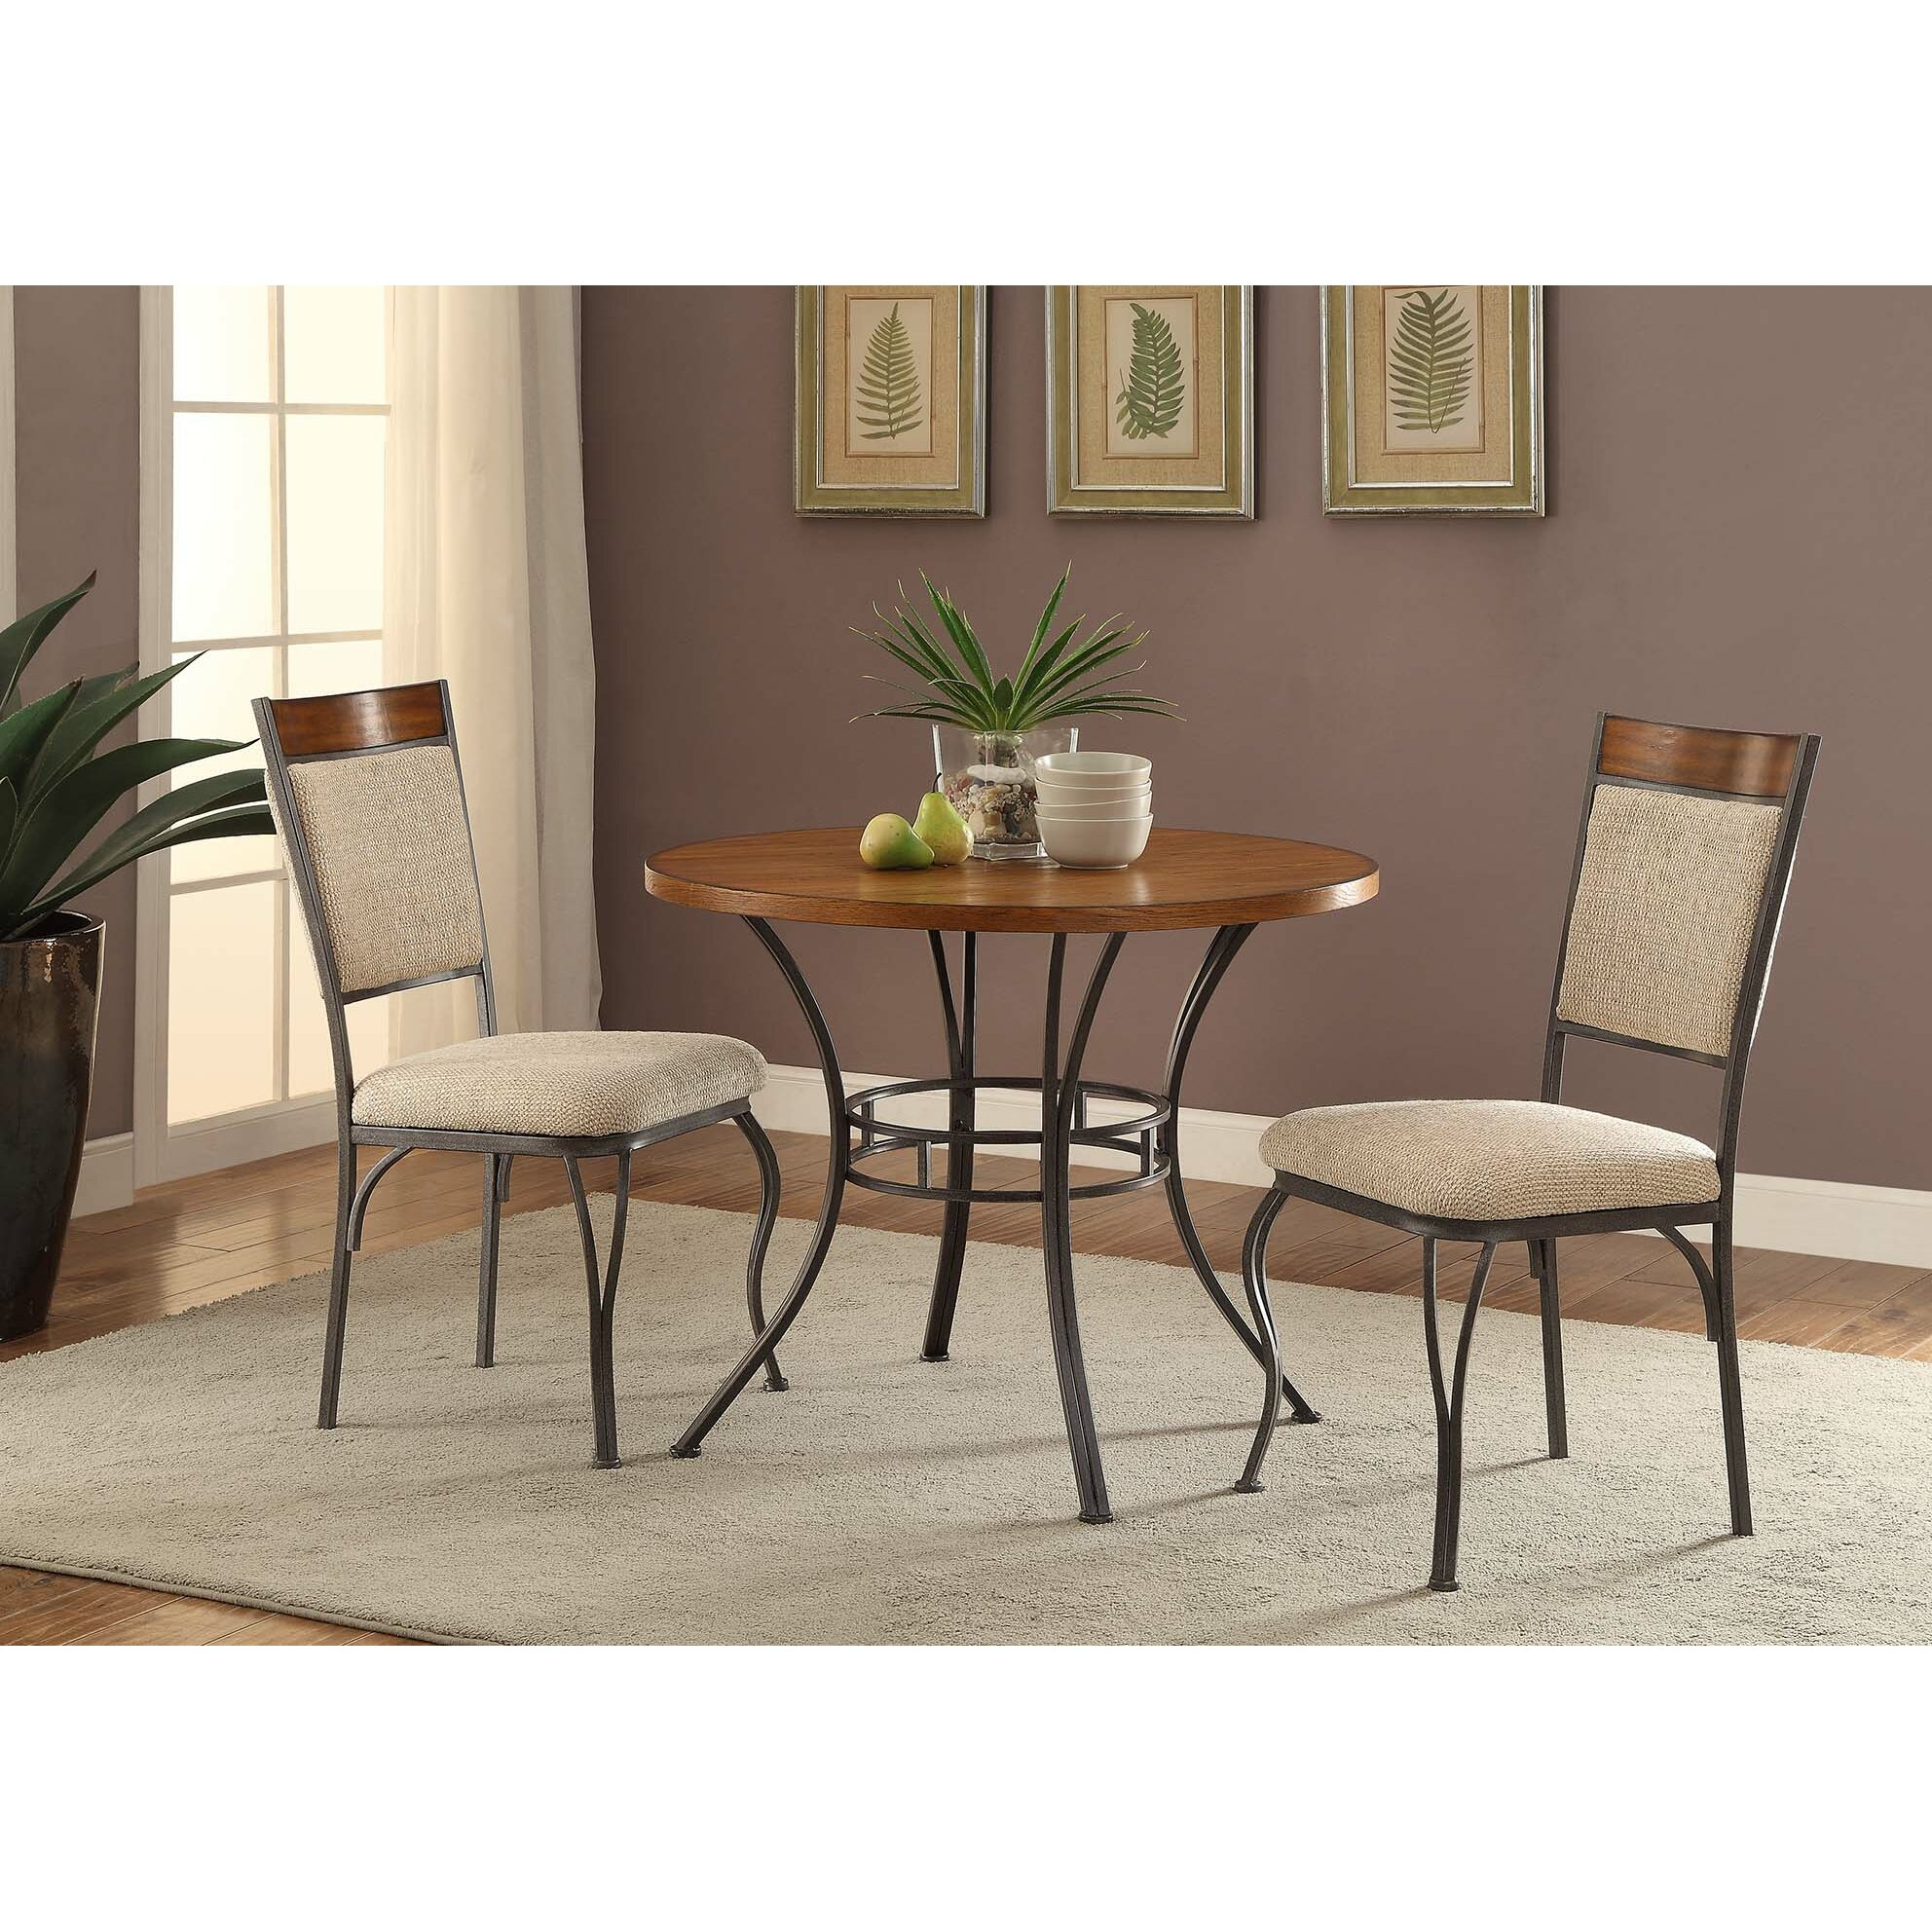 Anthony California 3 Piece Dining Set Reviews Wayfair